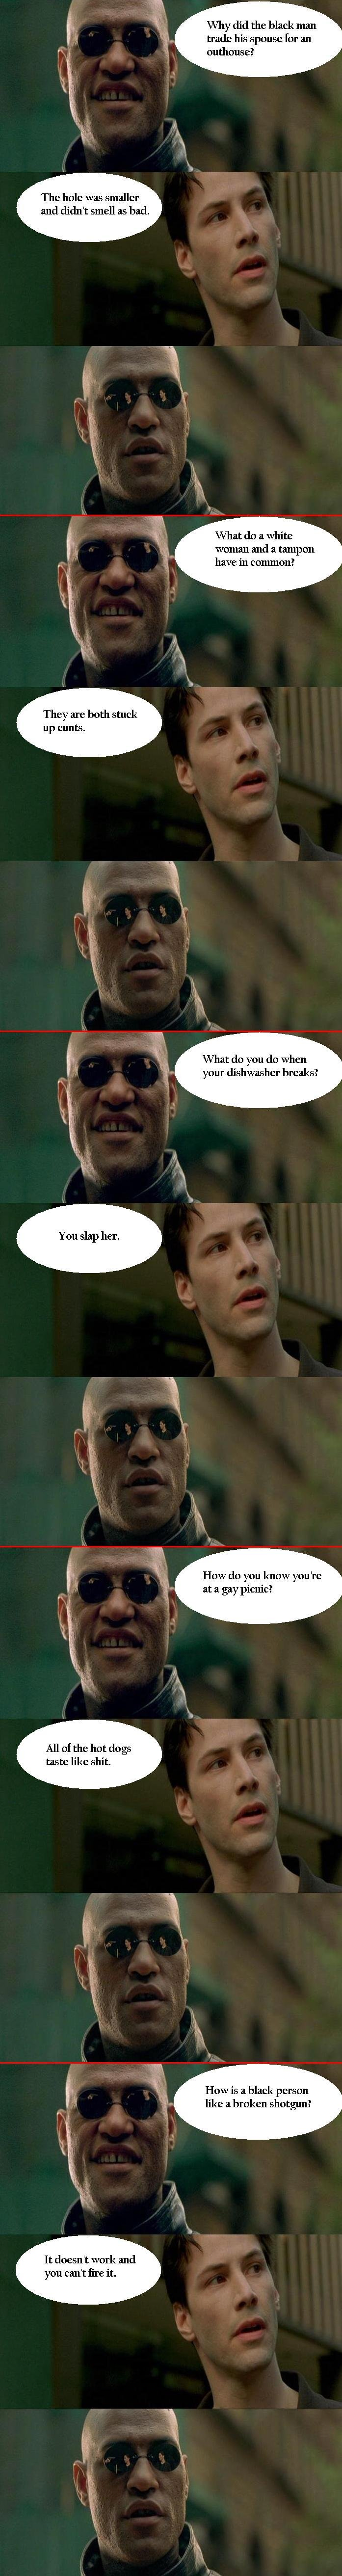 Matrix Compilation 1. If you laughed, you are probably going to hell like me. Enjoy!. Thy did the black man trade his spouse for an outhouse? The hole was small